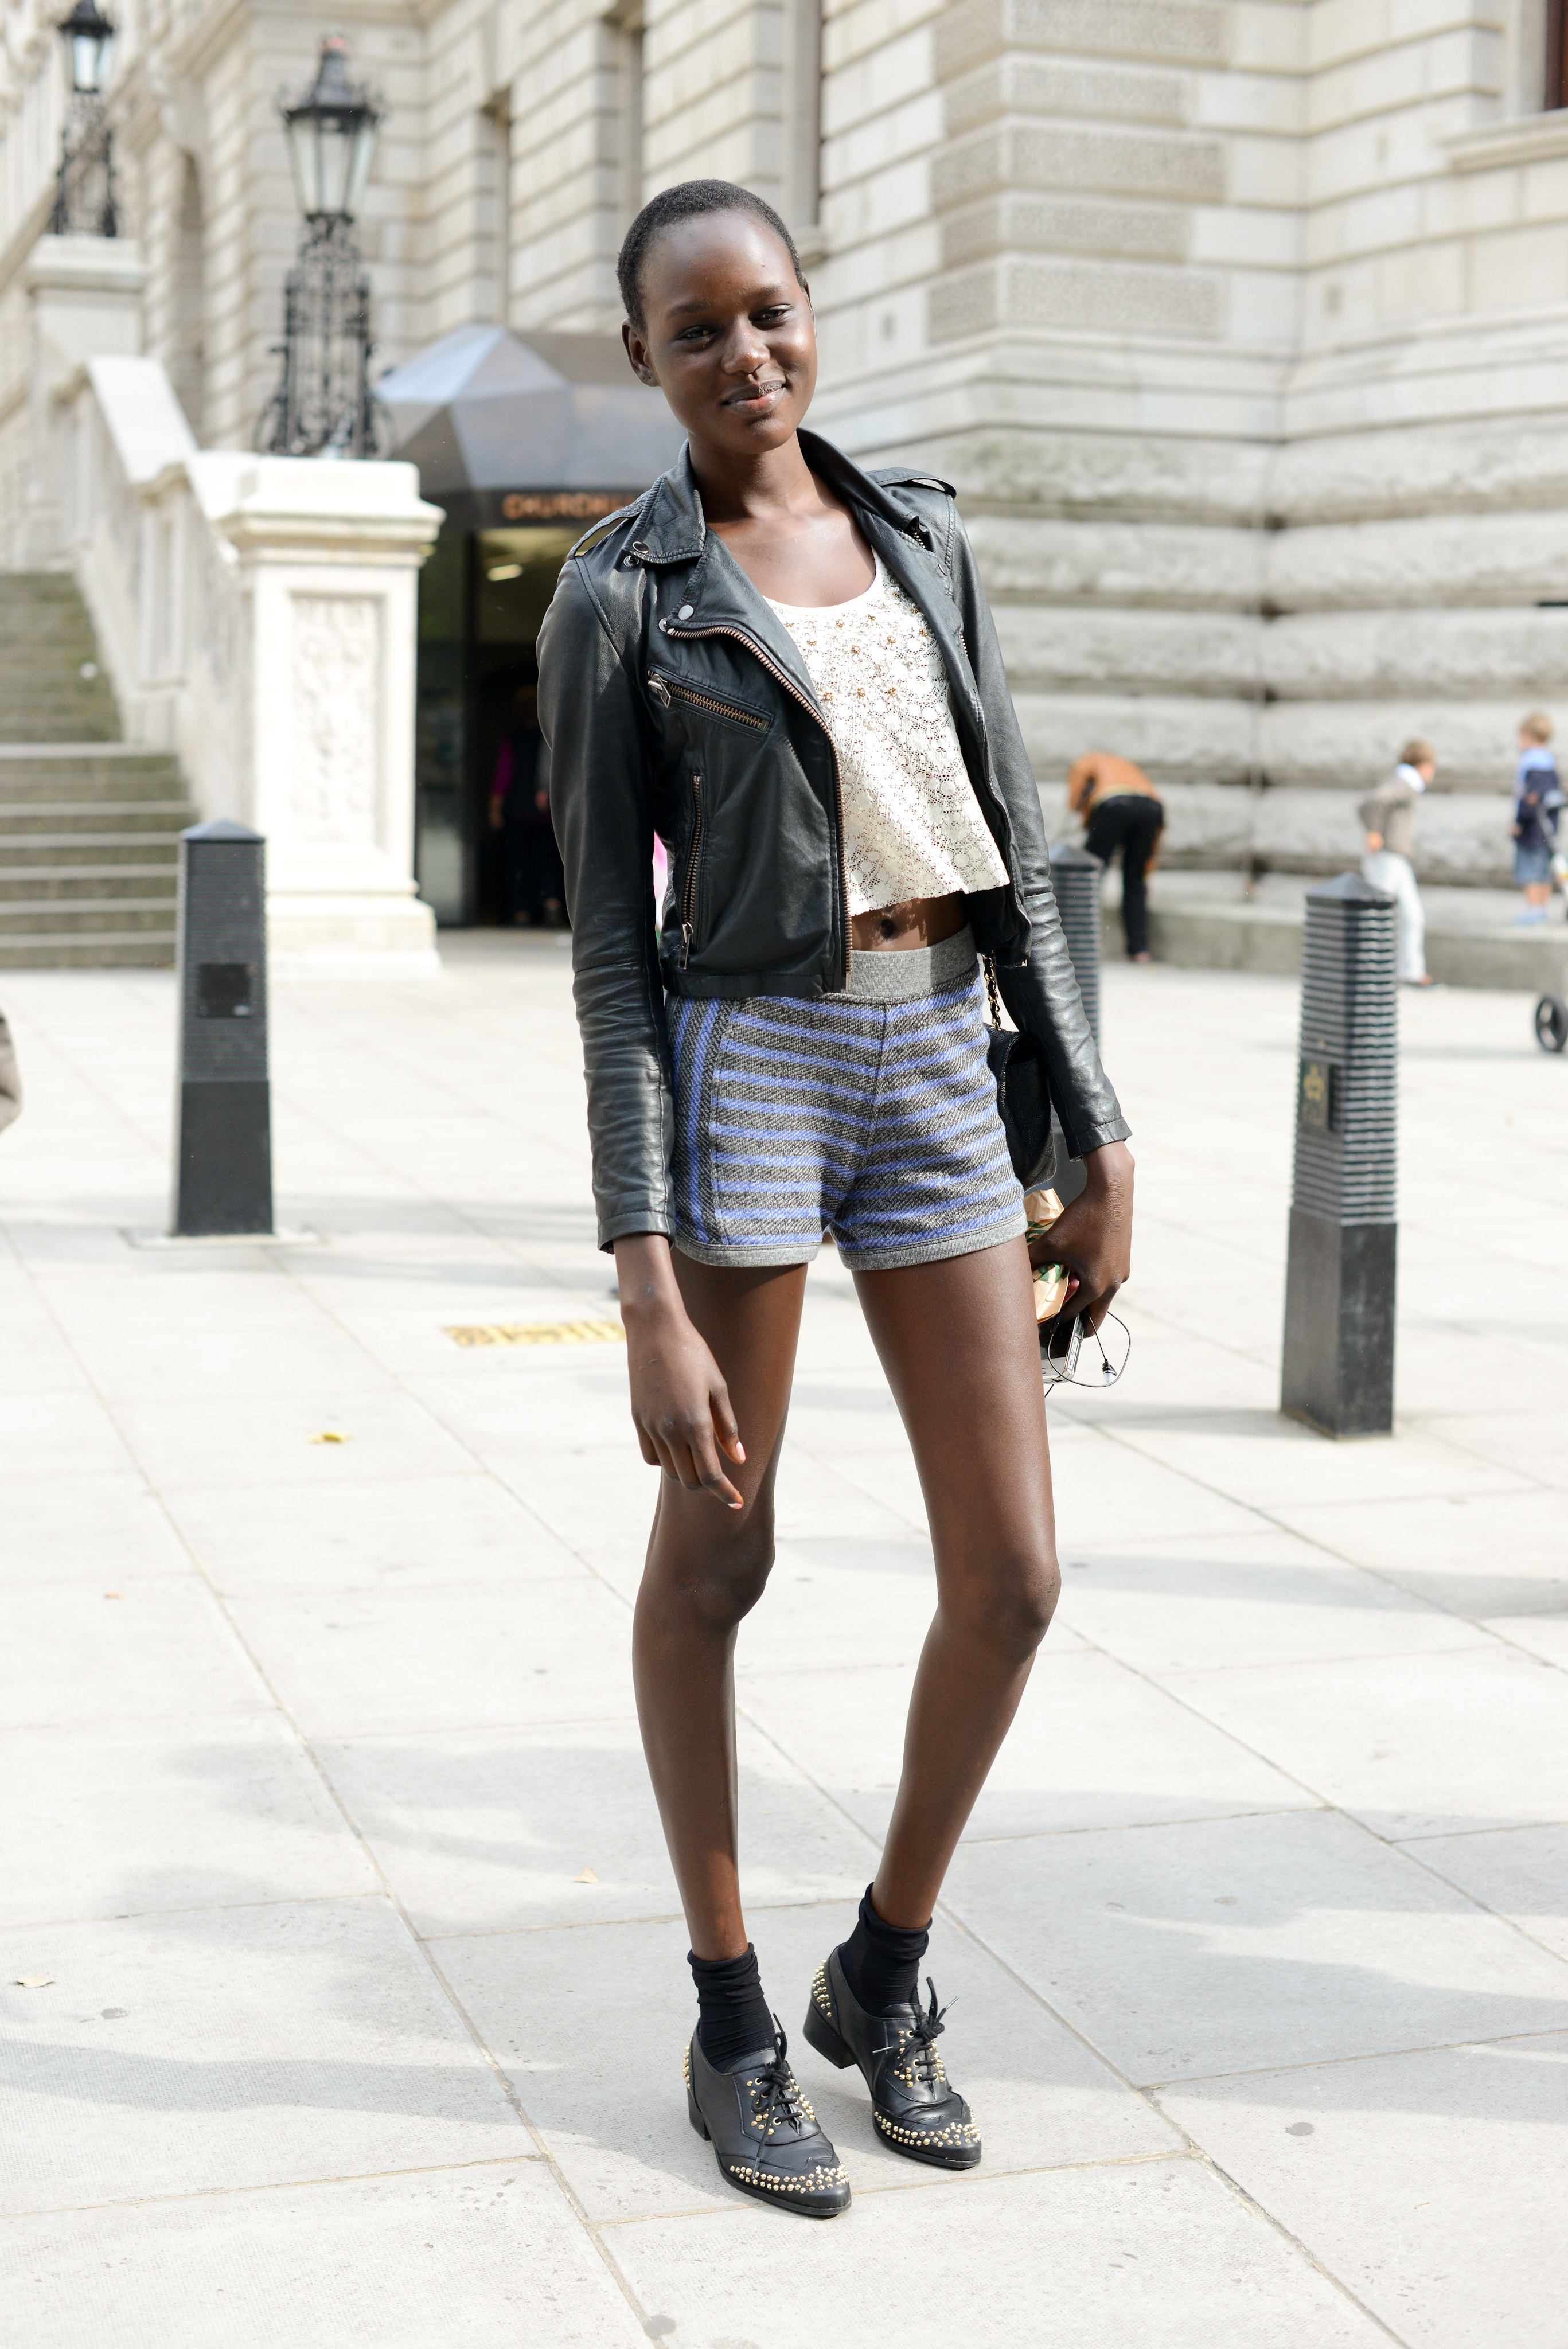 Punch up sportier shorts with a slick leather jacket.